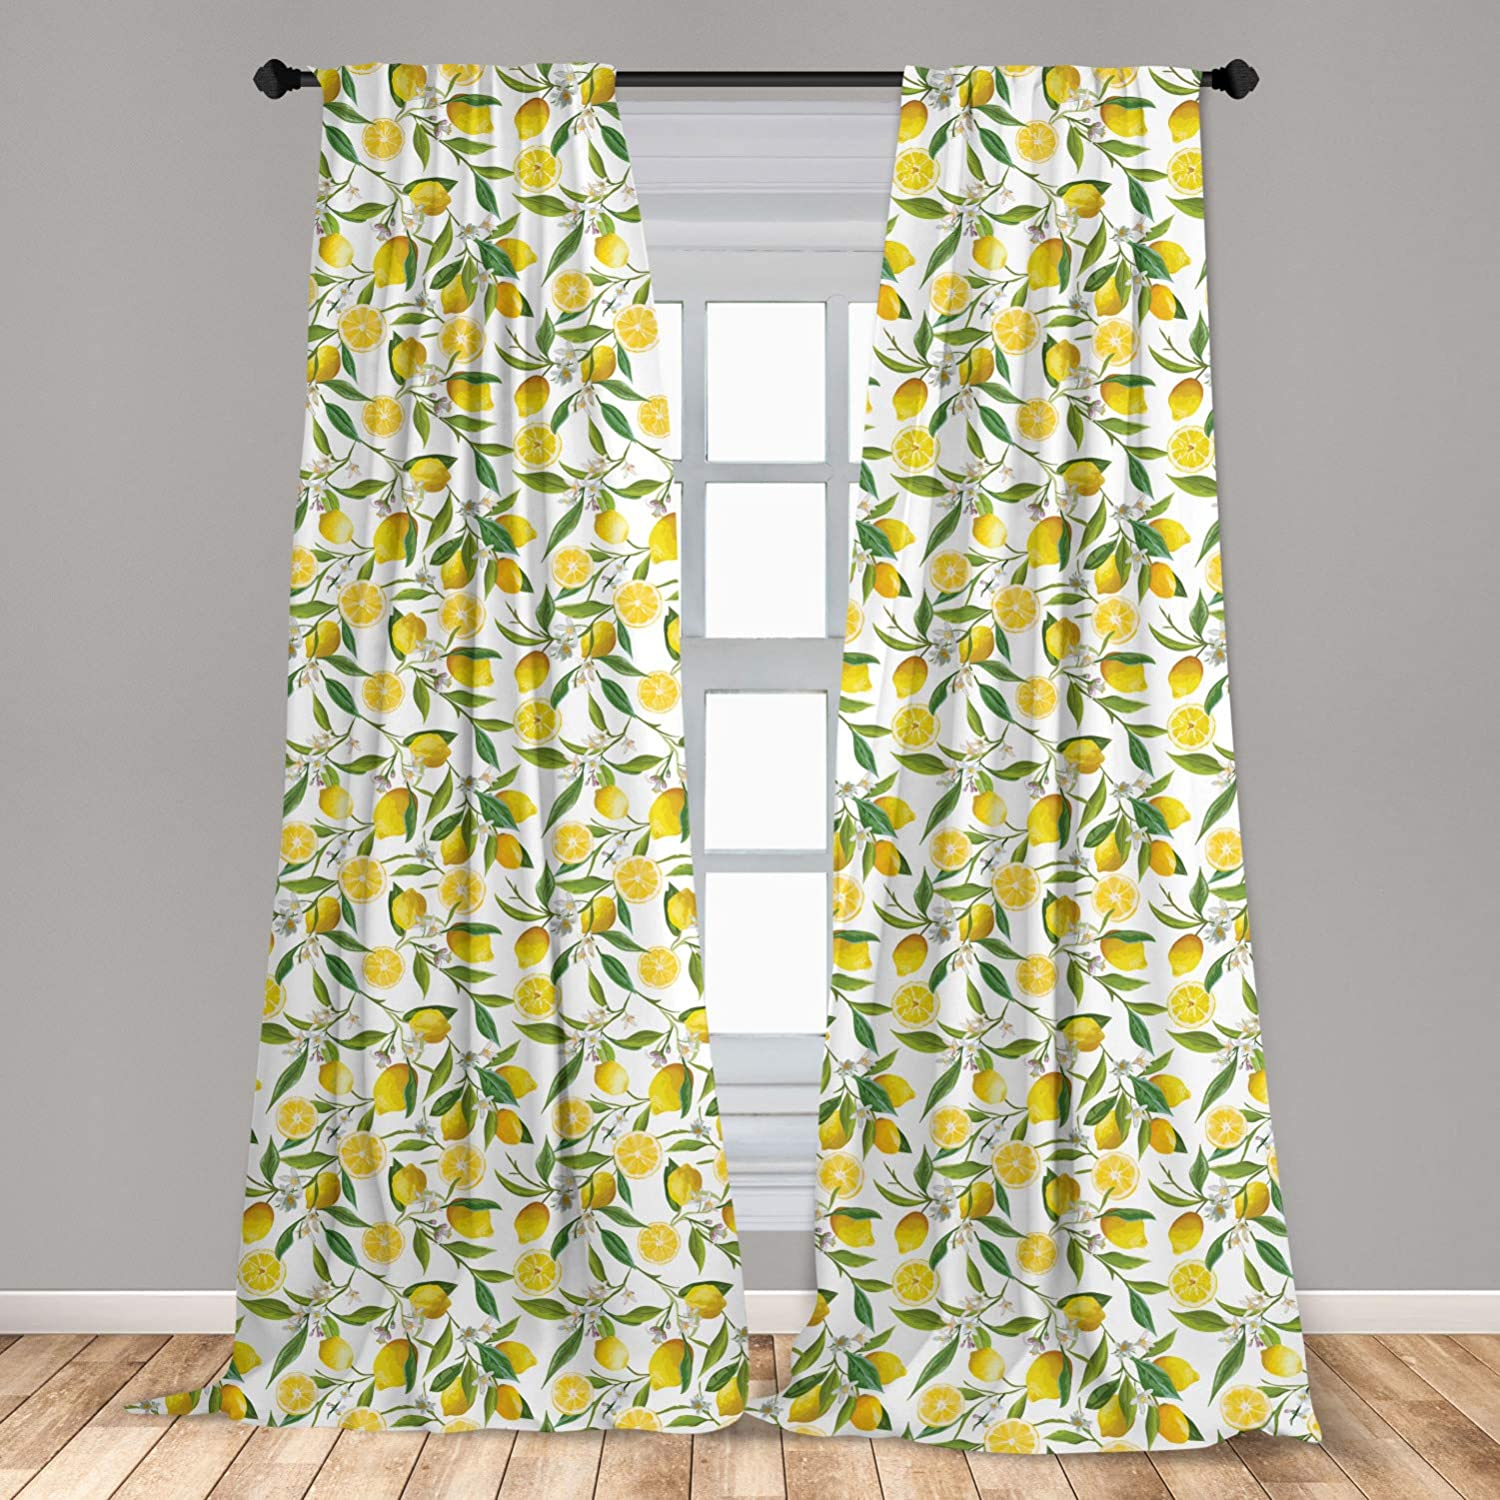 """Ambesonne Nature 2 Panel Curtain Set, Exotic Lemon Tree Branches Yummy Delicious Kitchen Gardening Design, Lightweight Window Treatment Living Room Bedroom Decor, 56"""" x 84"""", Fern Green"""